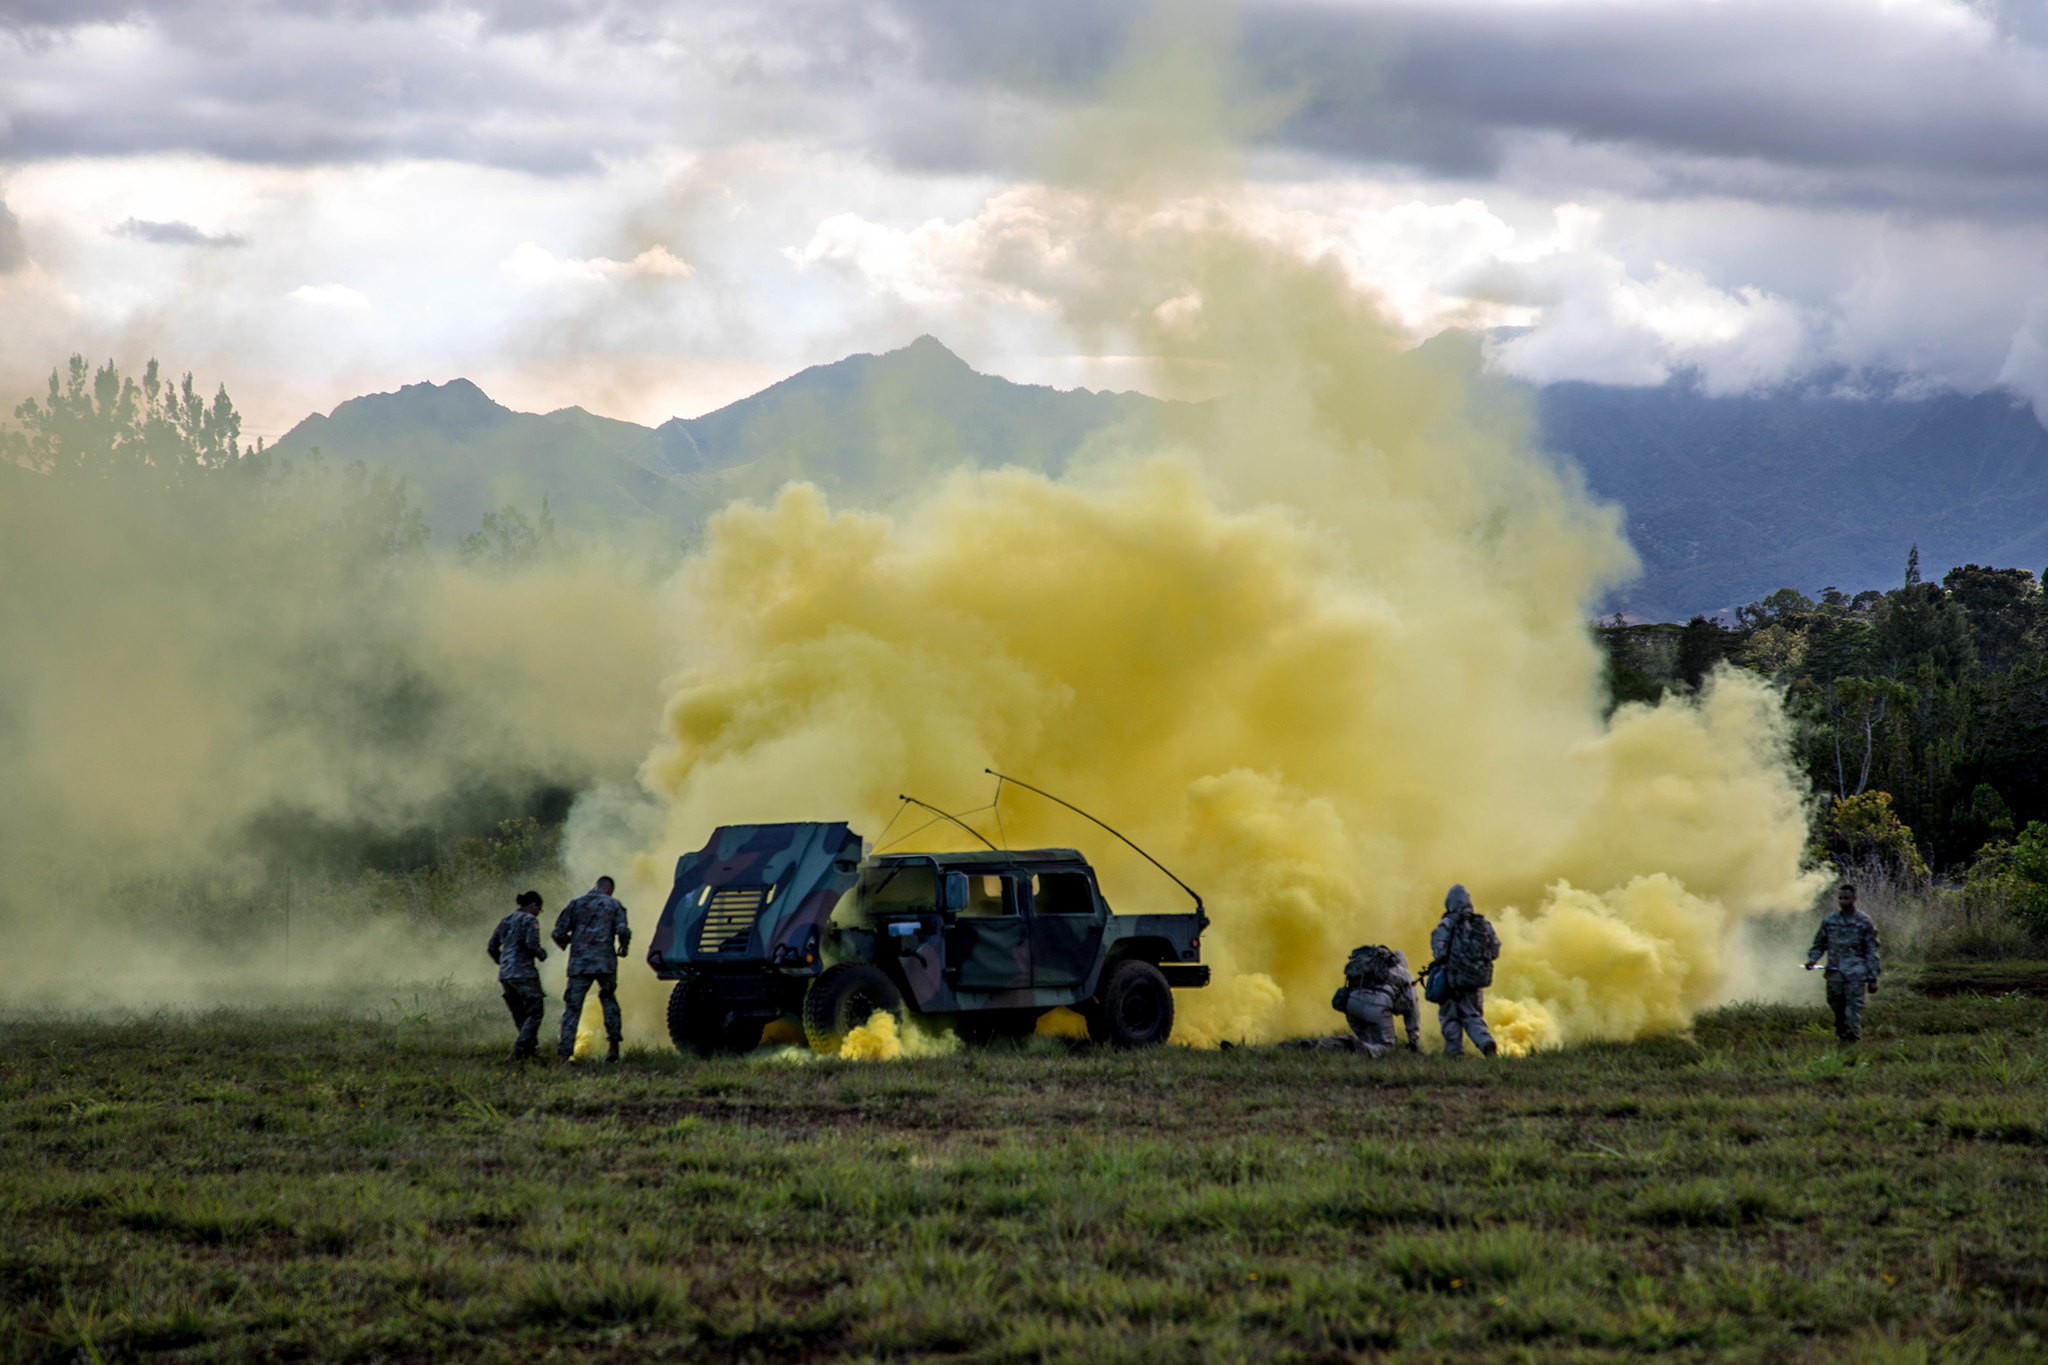 Soldiers test their knowledge of Chemical, Biological, Radiological and Nuclear (CBRN) at the CBRN lane ran by 25th Sustainment Brigade CBRN specialist during Day 1 of the 25th ID NCO/Soldier of the Year five day competition held 12-16 May 2019, Schofield Baracks, Hawaii. (Sgt. Sarah D. Williams/Army)